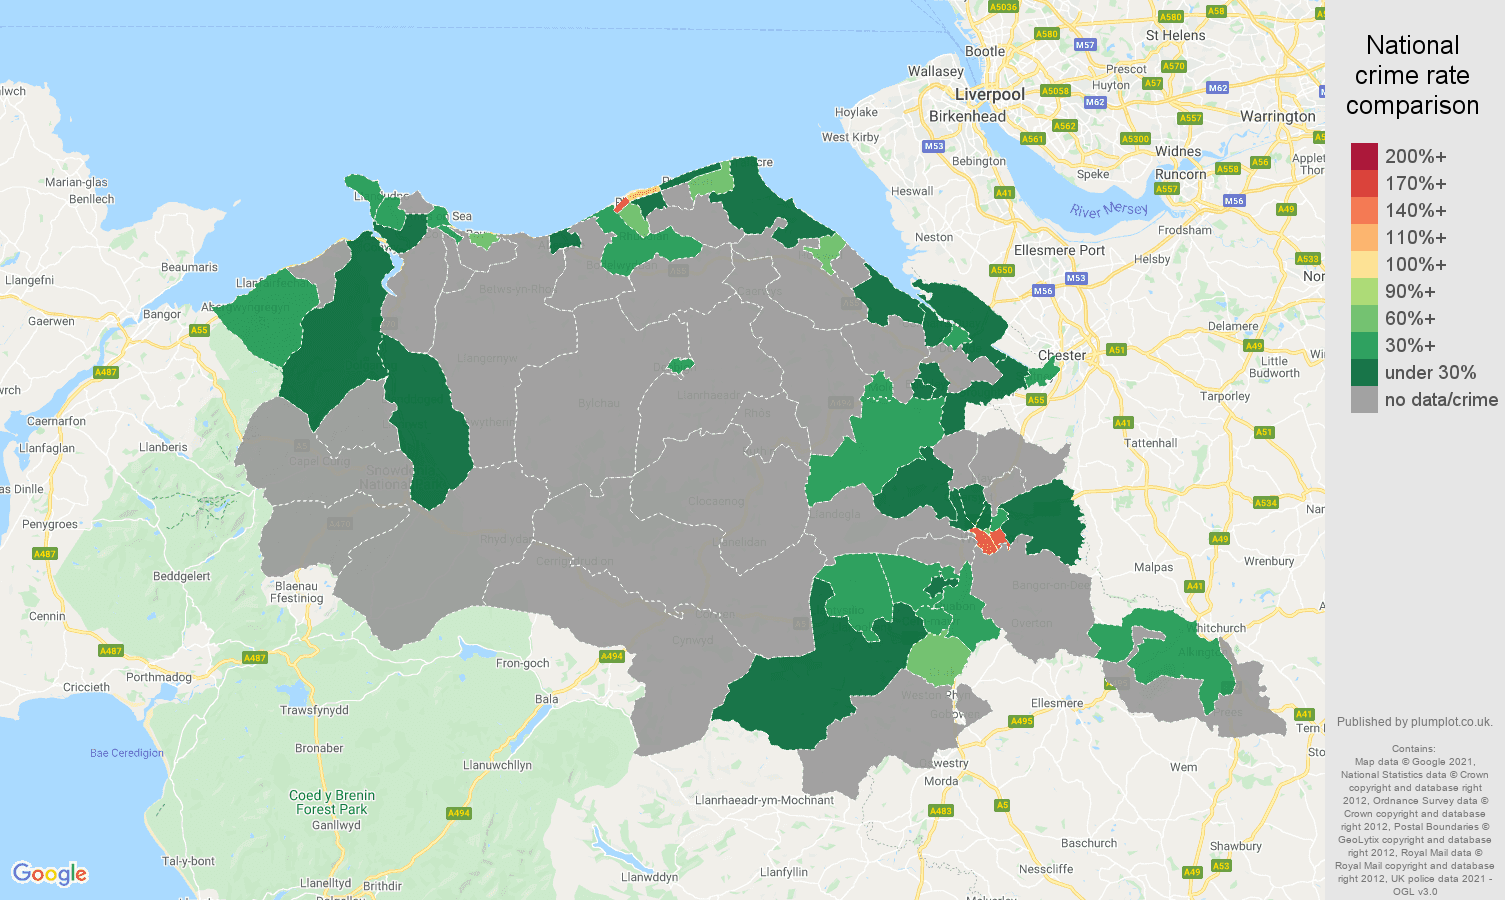 Clwyd robbery crime rate comparison map